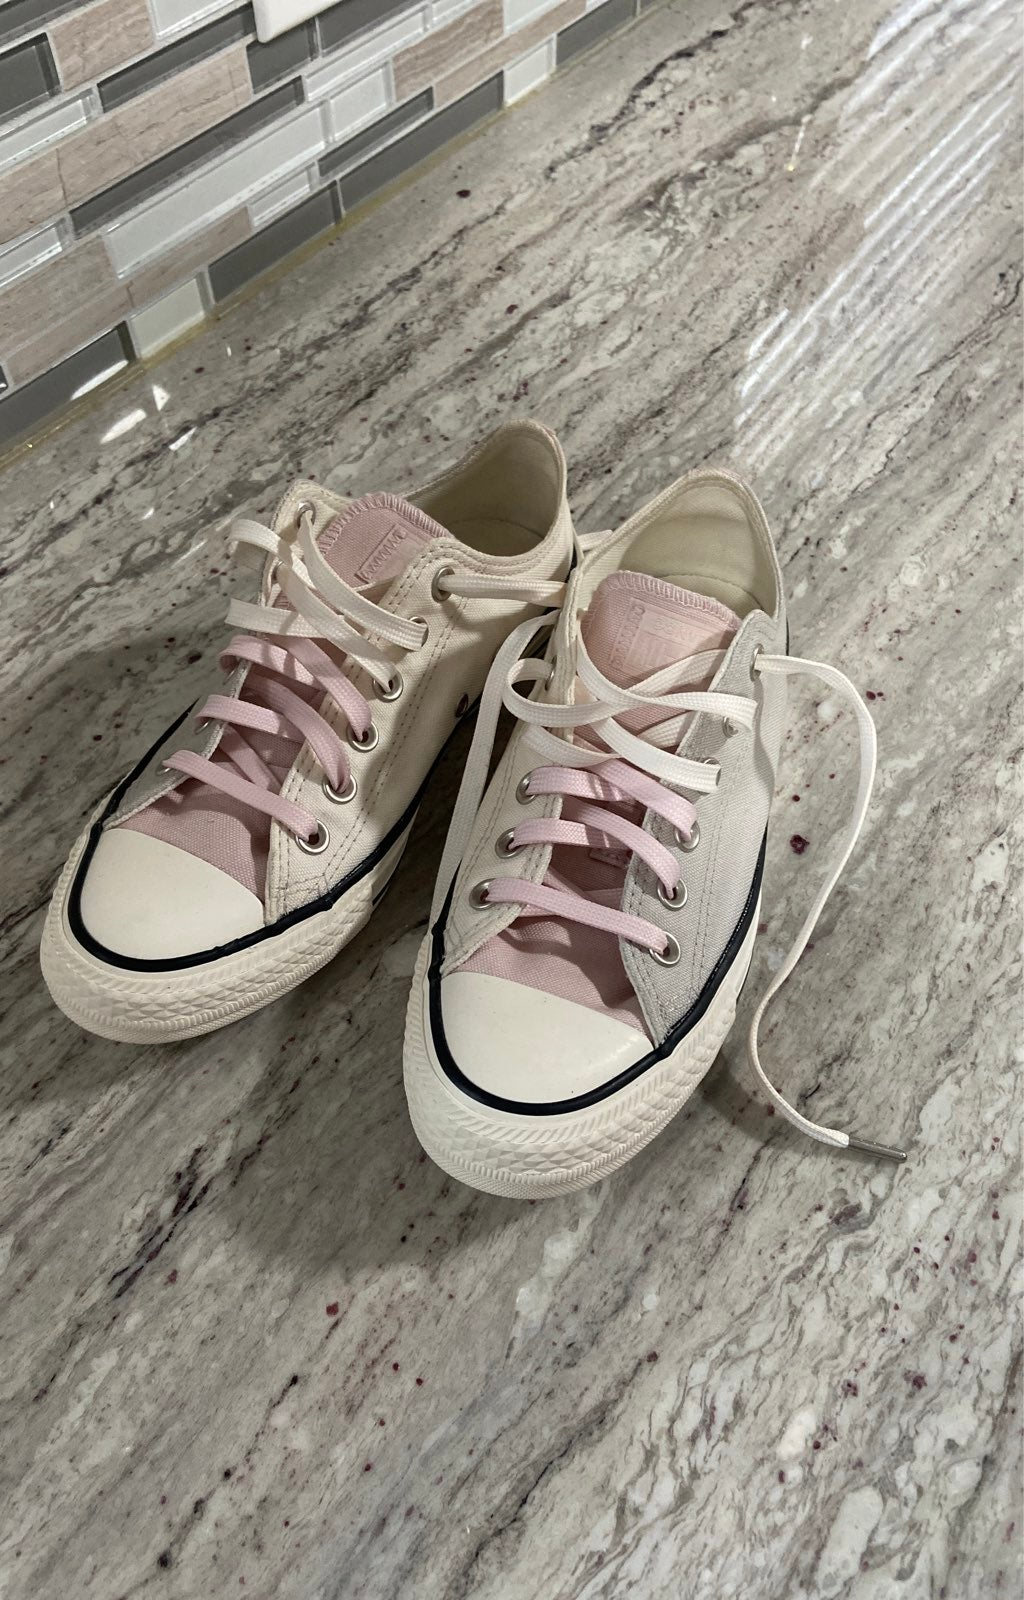 Womans Size 7 Converse All Star